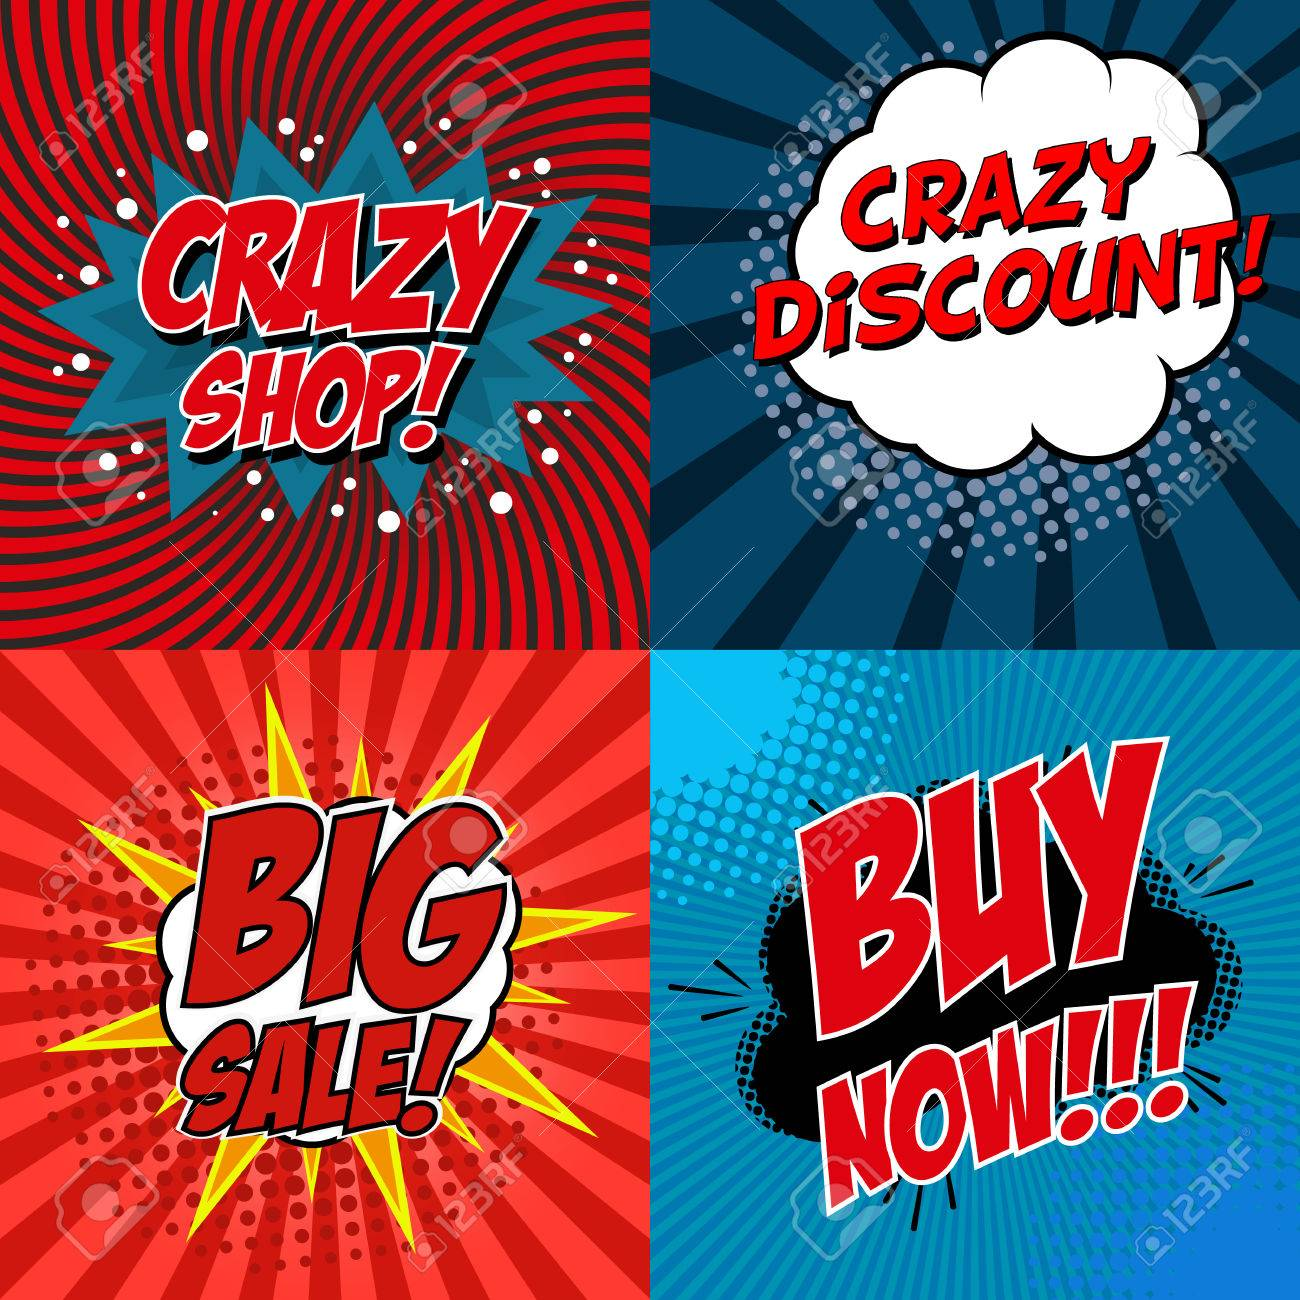 banner flyer pop art comic crazy shop crazy discount big banner flyer pop art comic crazy shop crazy discount big buy now